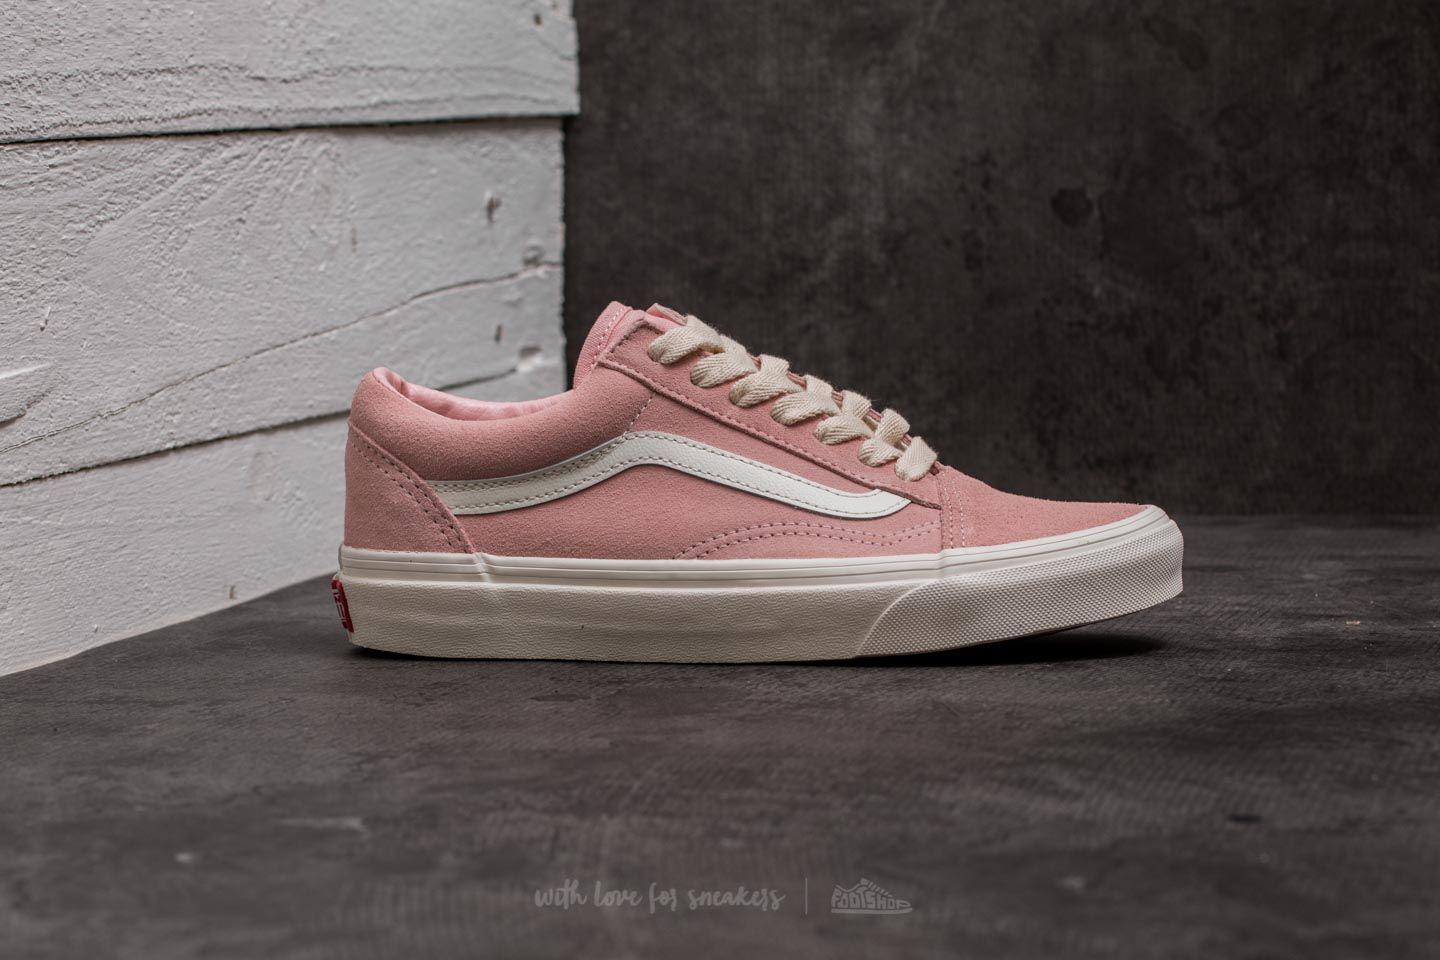 vans old skool herringbone